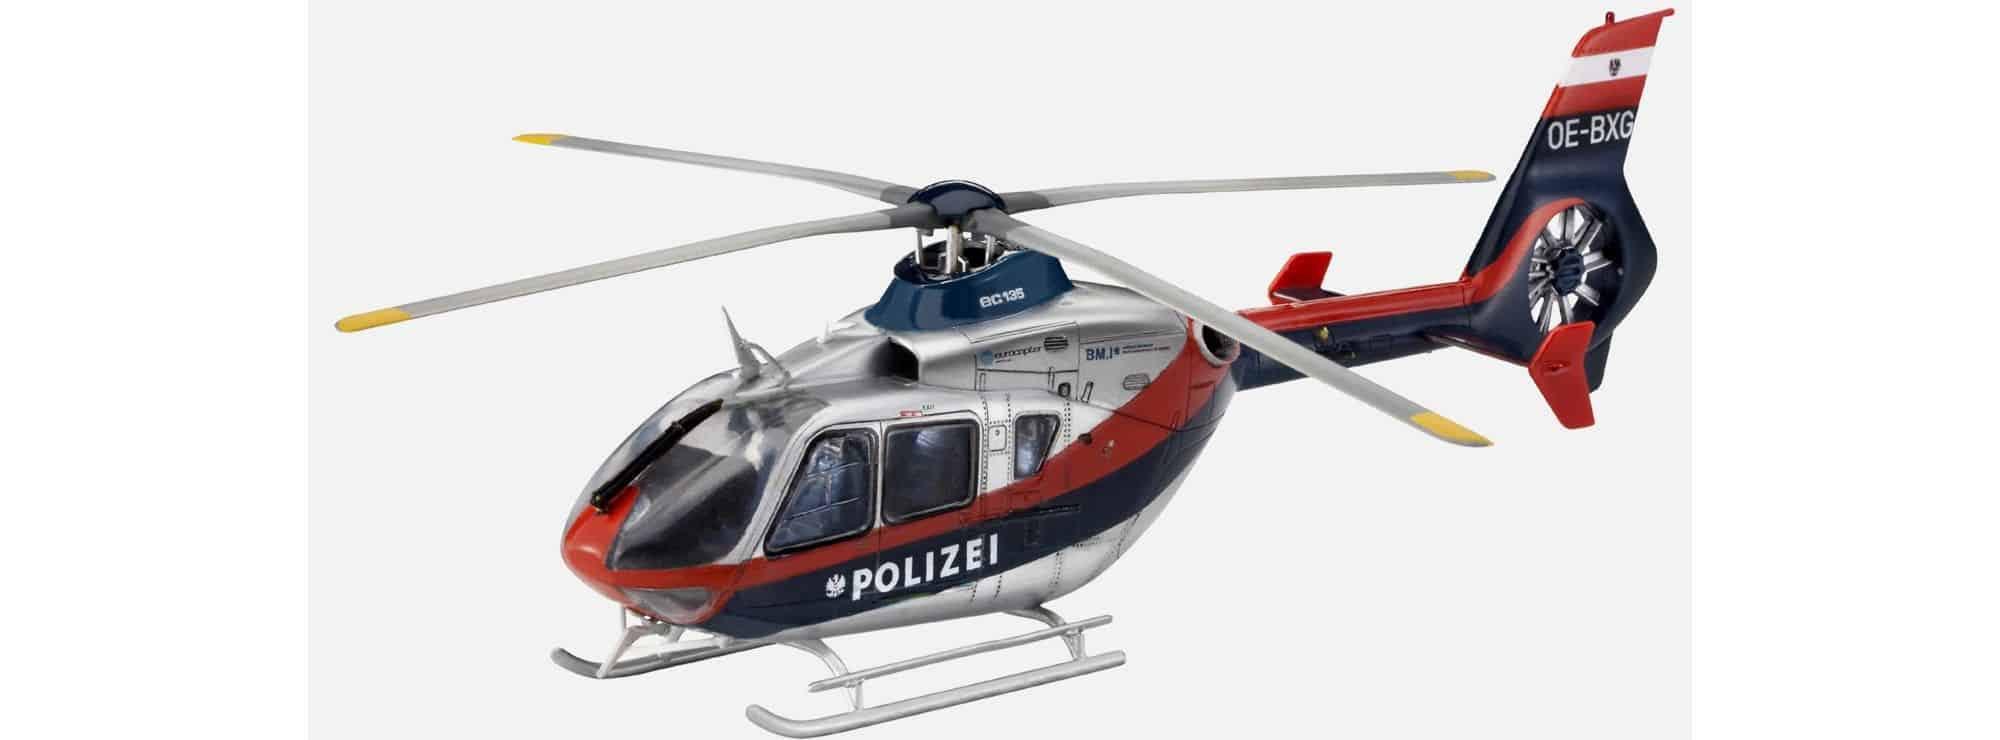 revell 04649 eurocopter ec 135 polizei sterreich. Black Bedroom Furniture Sets. Home Design Ideas